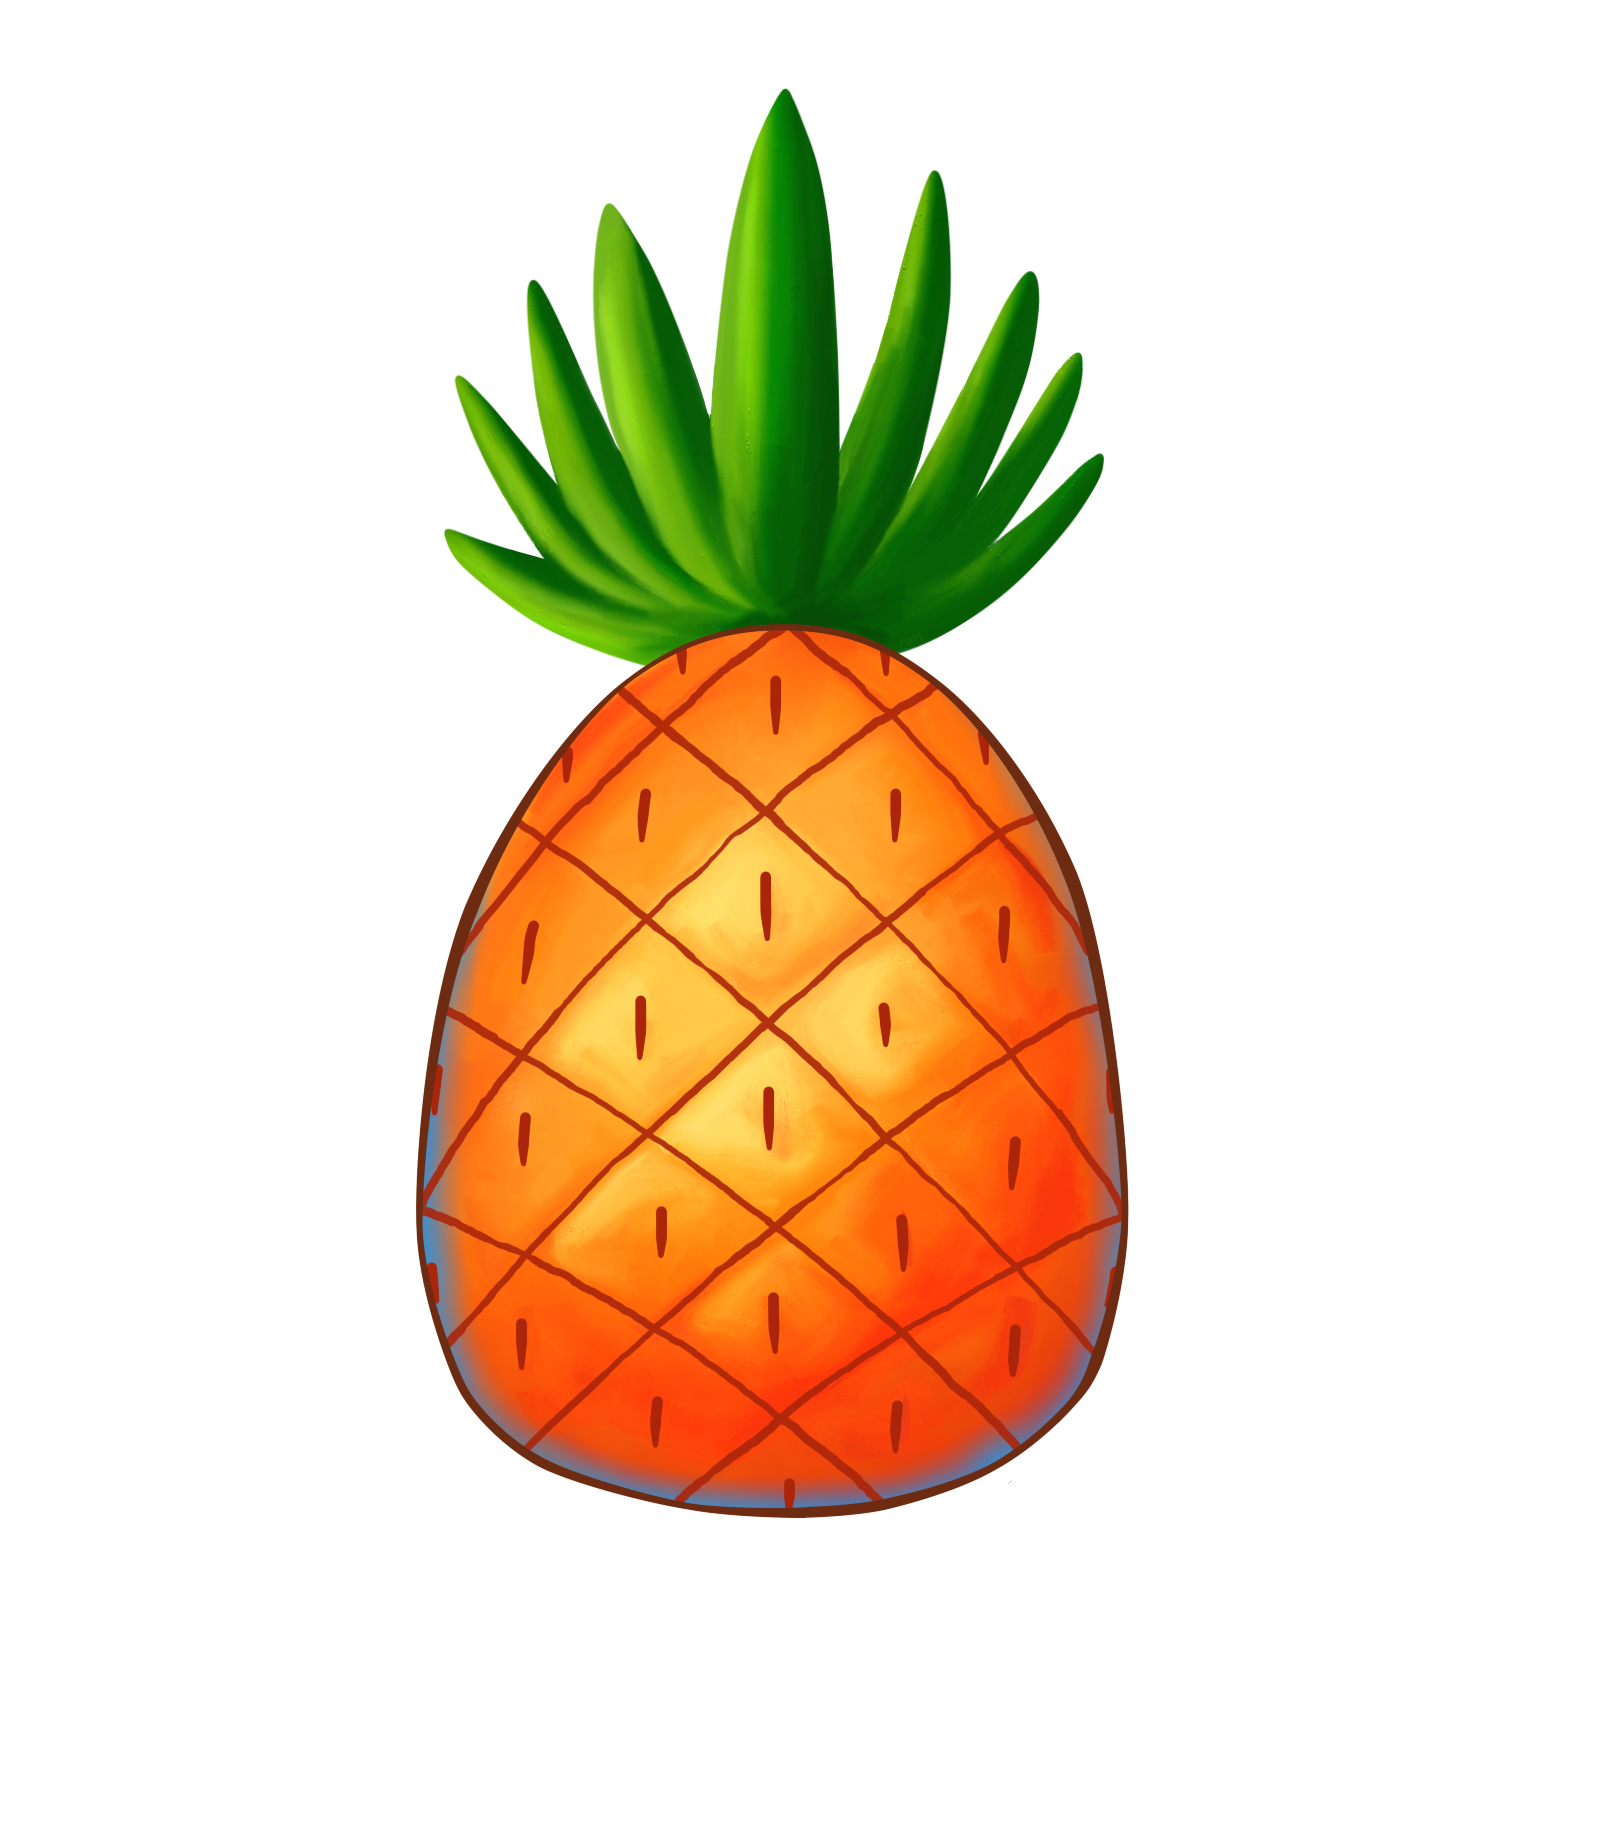 Pineapple clipart animated.  collection of spongebob